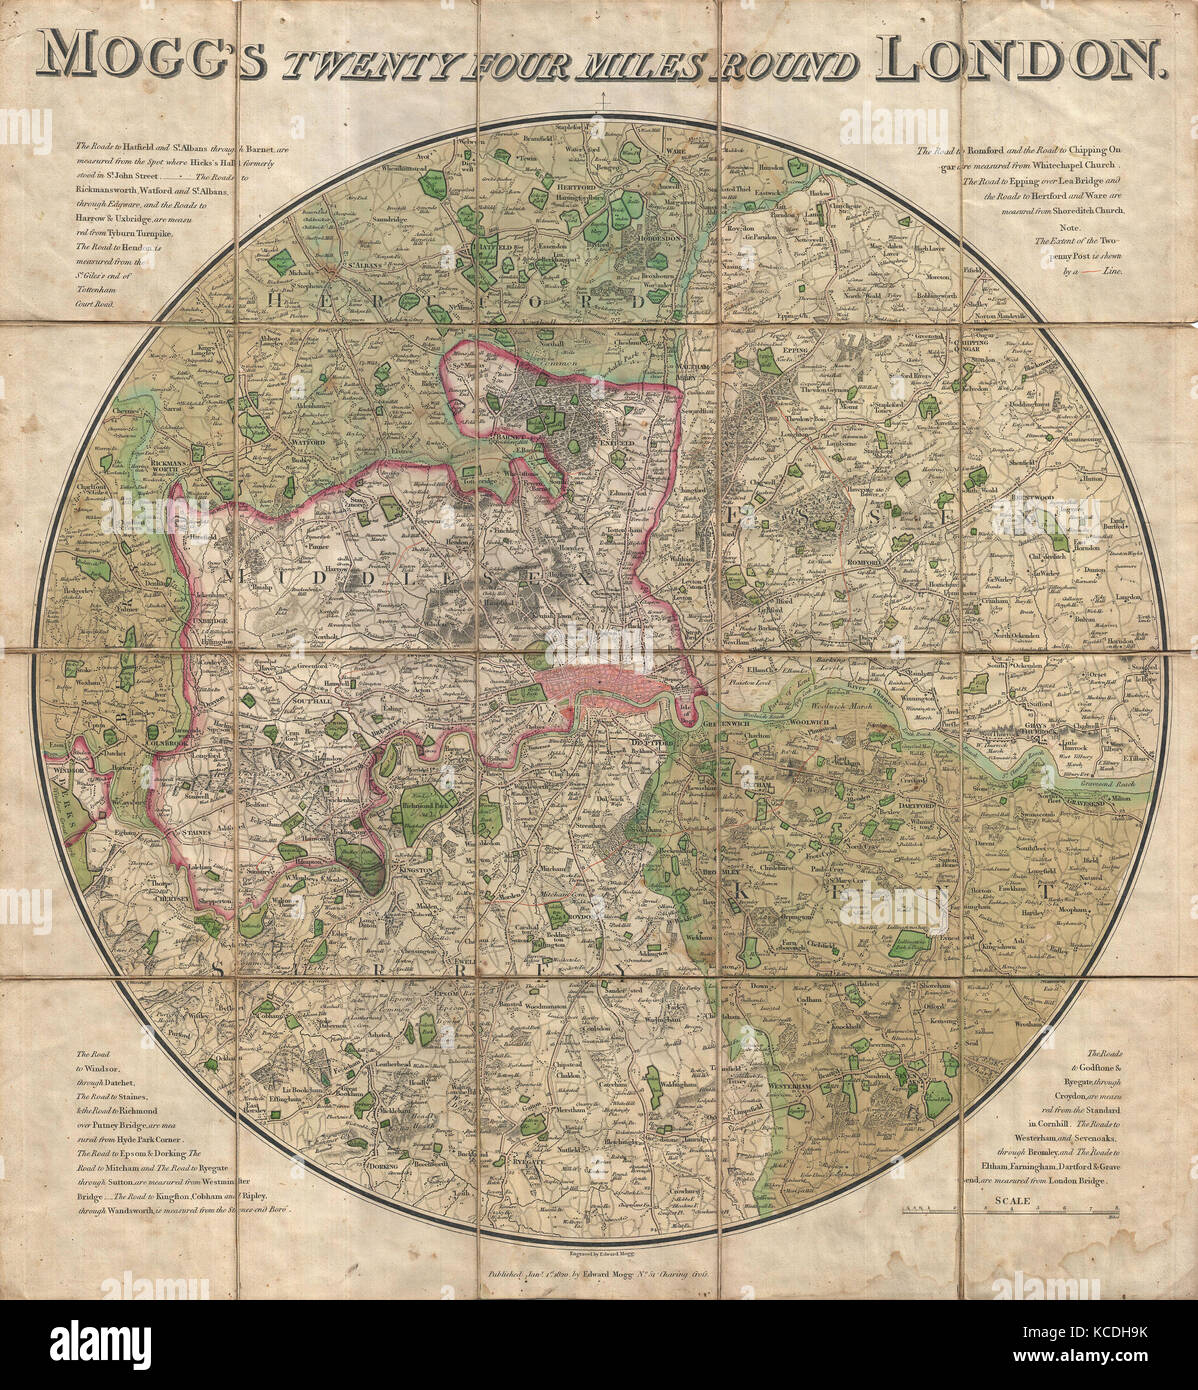 1820, Mogg Pocket or Case Map of London, England, 24 Miles around - Stock Image